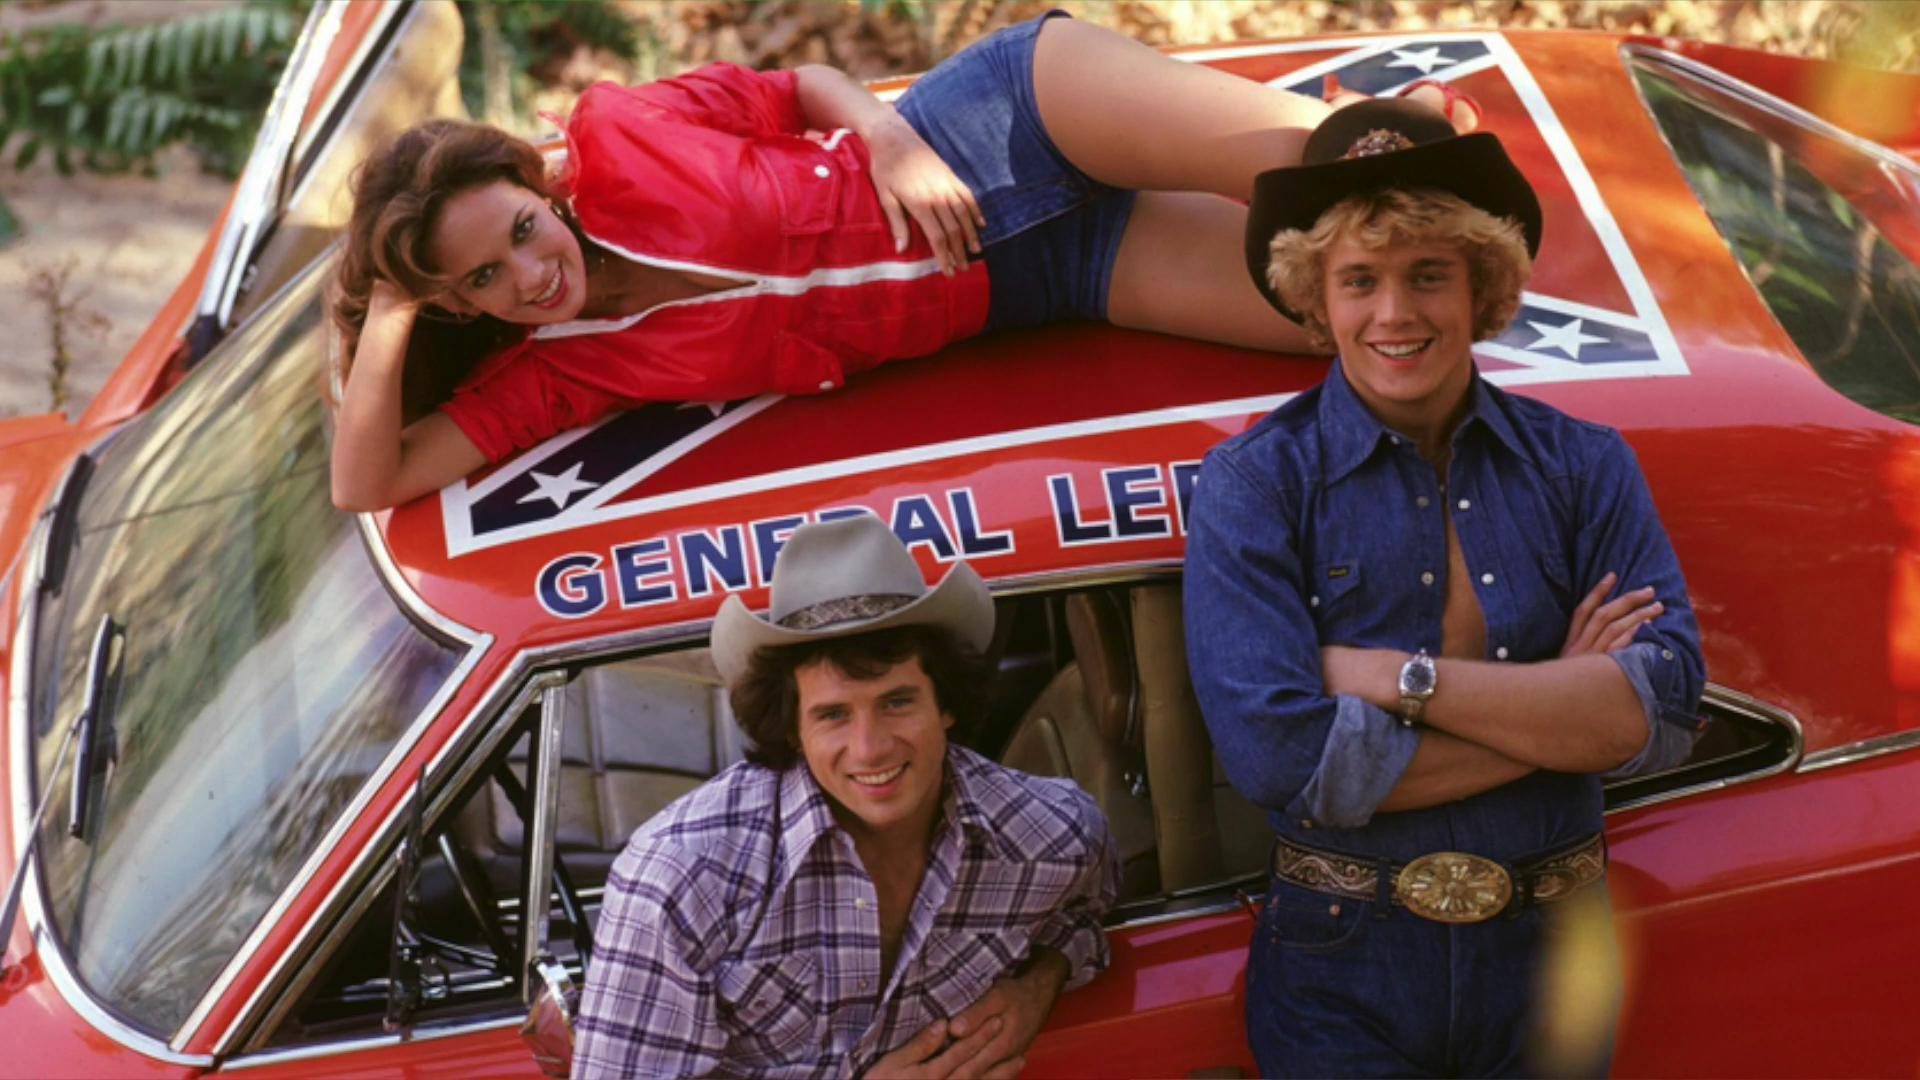 Dukes Of Hazzard Car With Confederate Flag To Stay Put At Car Museum